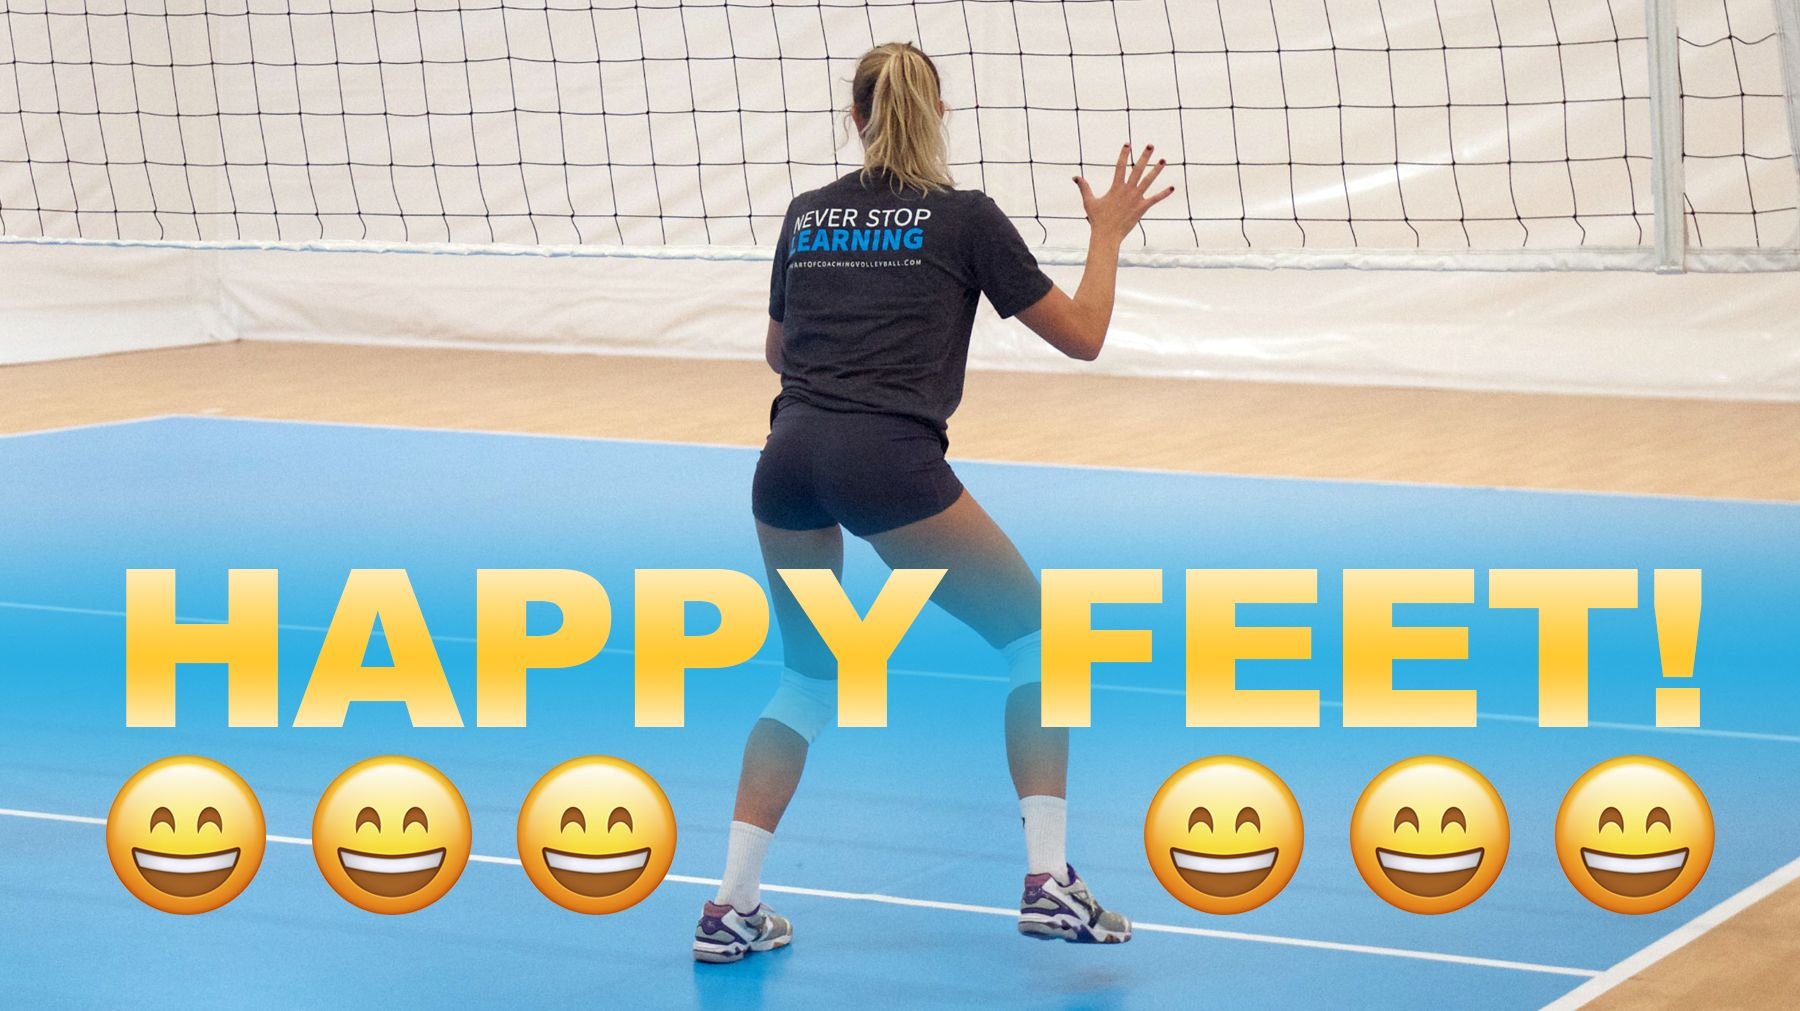 Happy Feet The Art Of Coaching Volleyball Coaching Volleyball Volleyball Training Volleyball Workouts